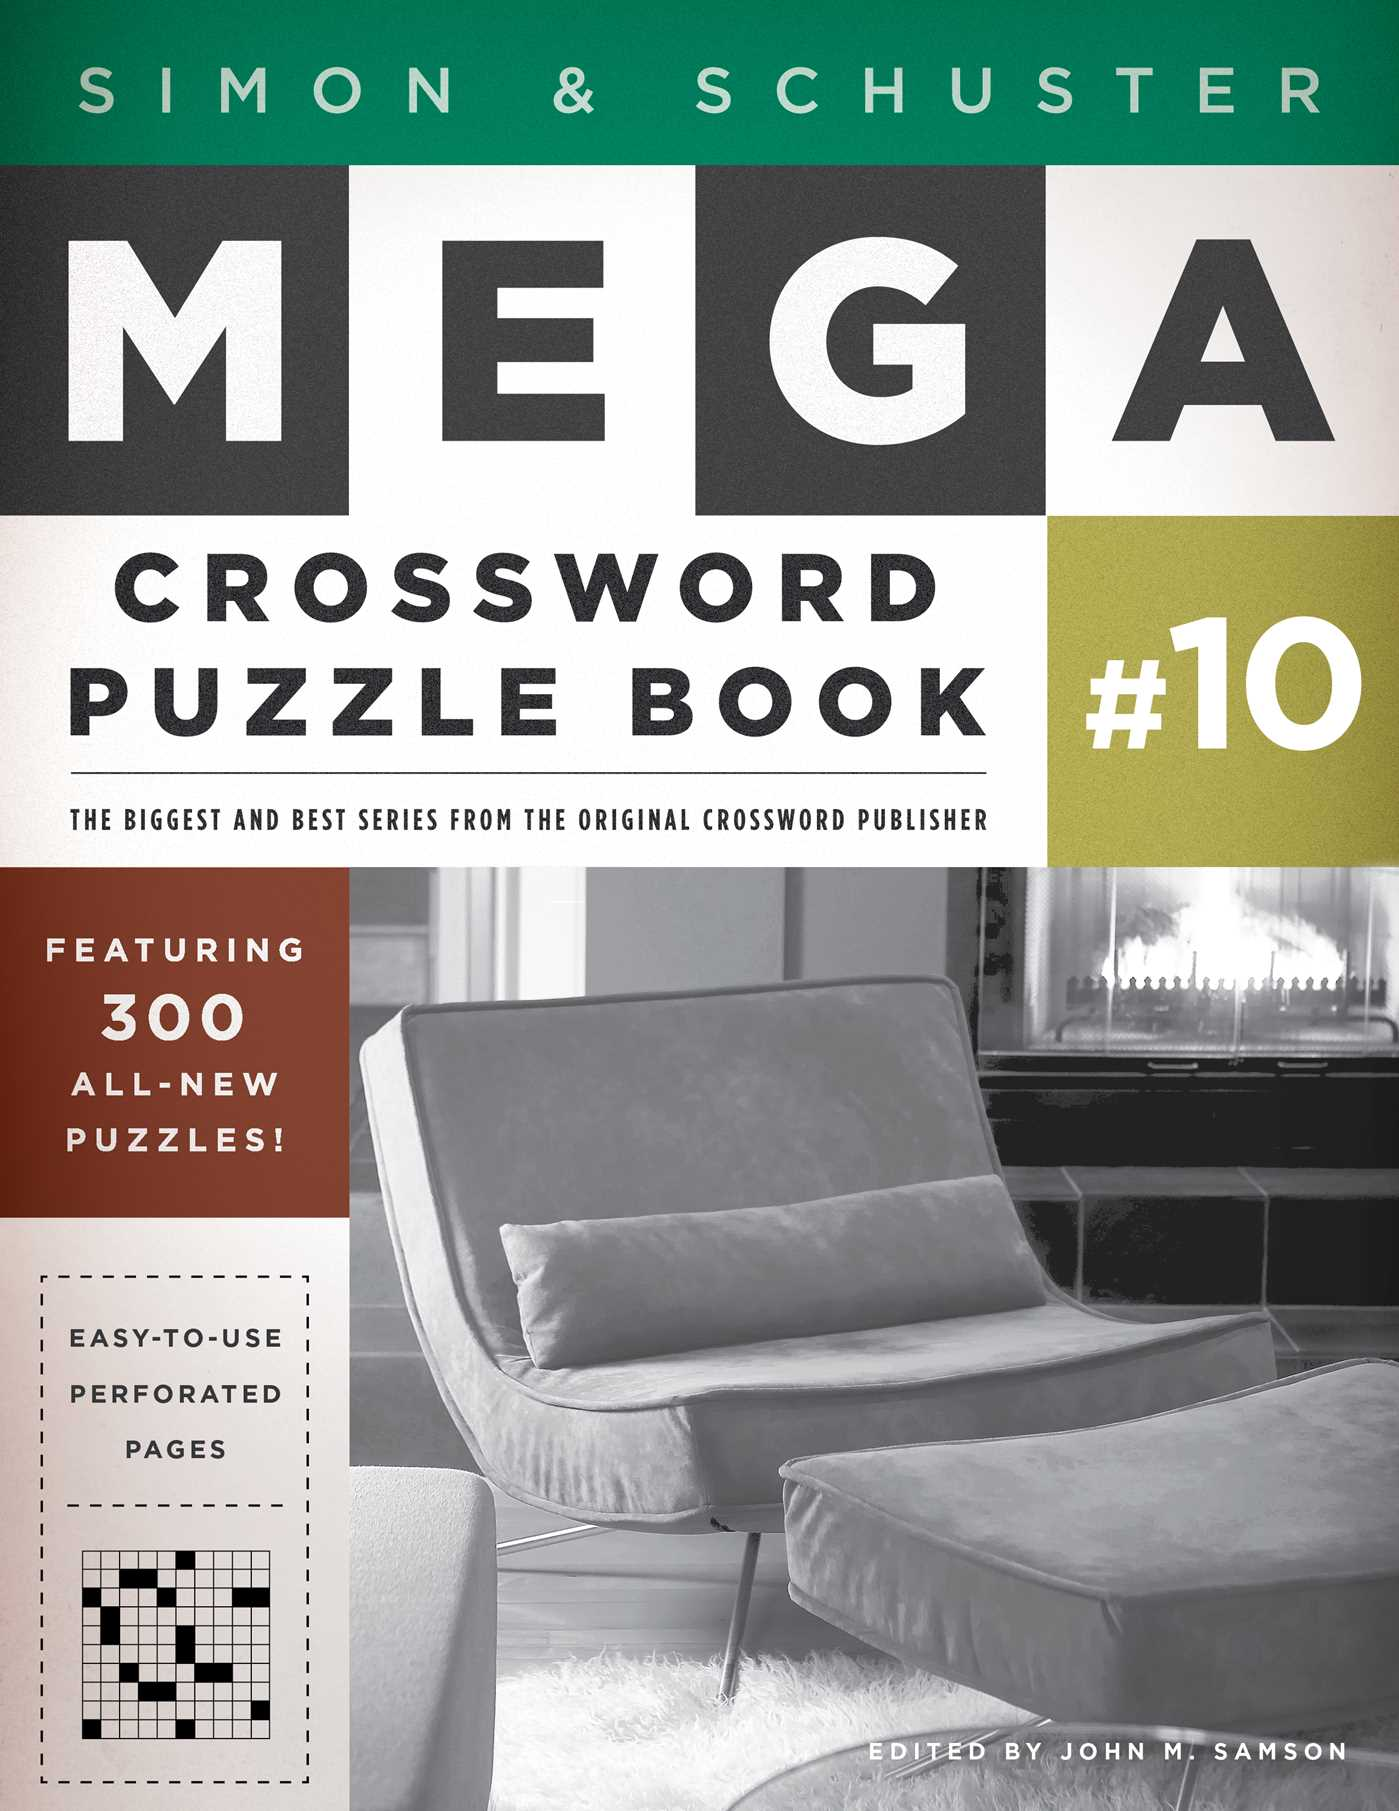 Simon schuster mega crossword puzzle book 10 9781451627381 hr